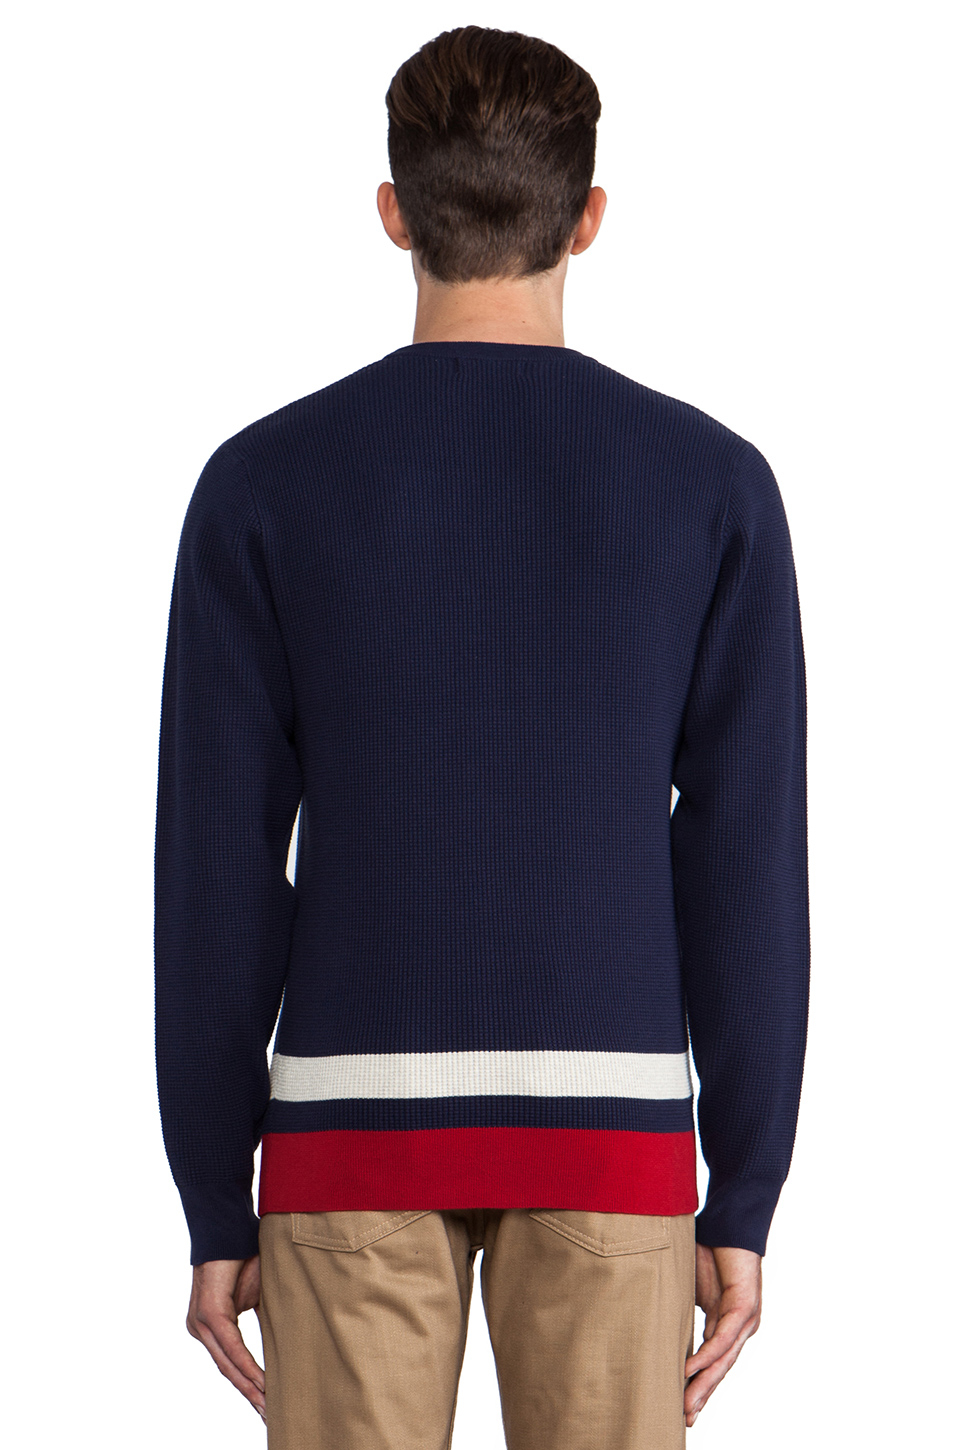 fred perry pullover sweater in navy in blue for men lyst. Black Bedroom Furniture Sets. Home Design Ideas